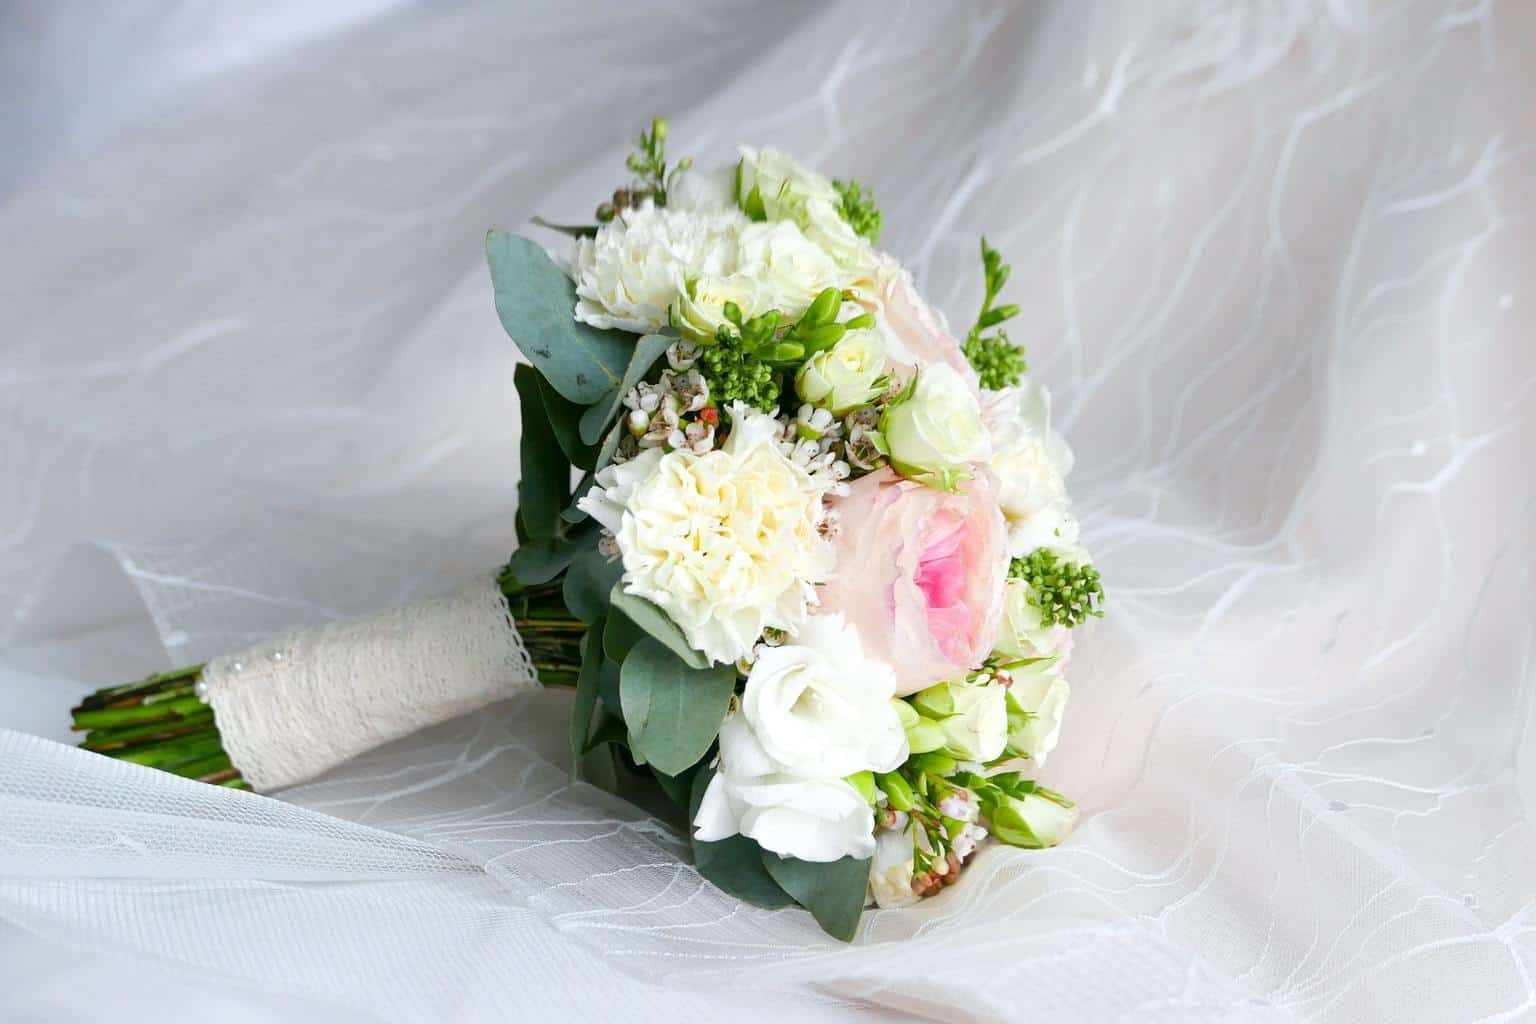 closeup photo of white and pink petaled flower bouquet